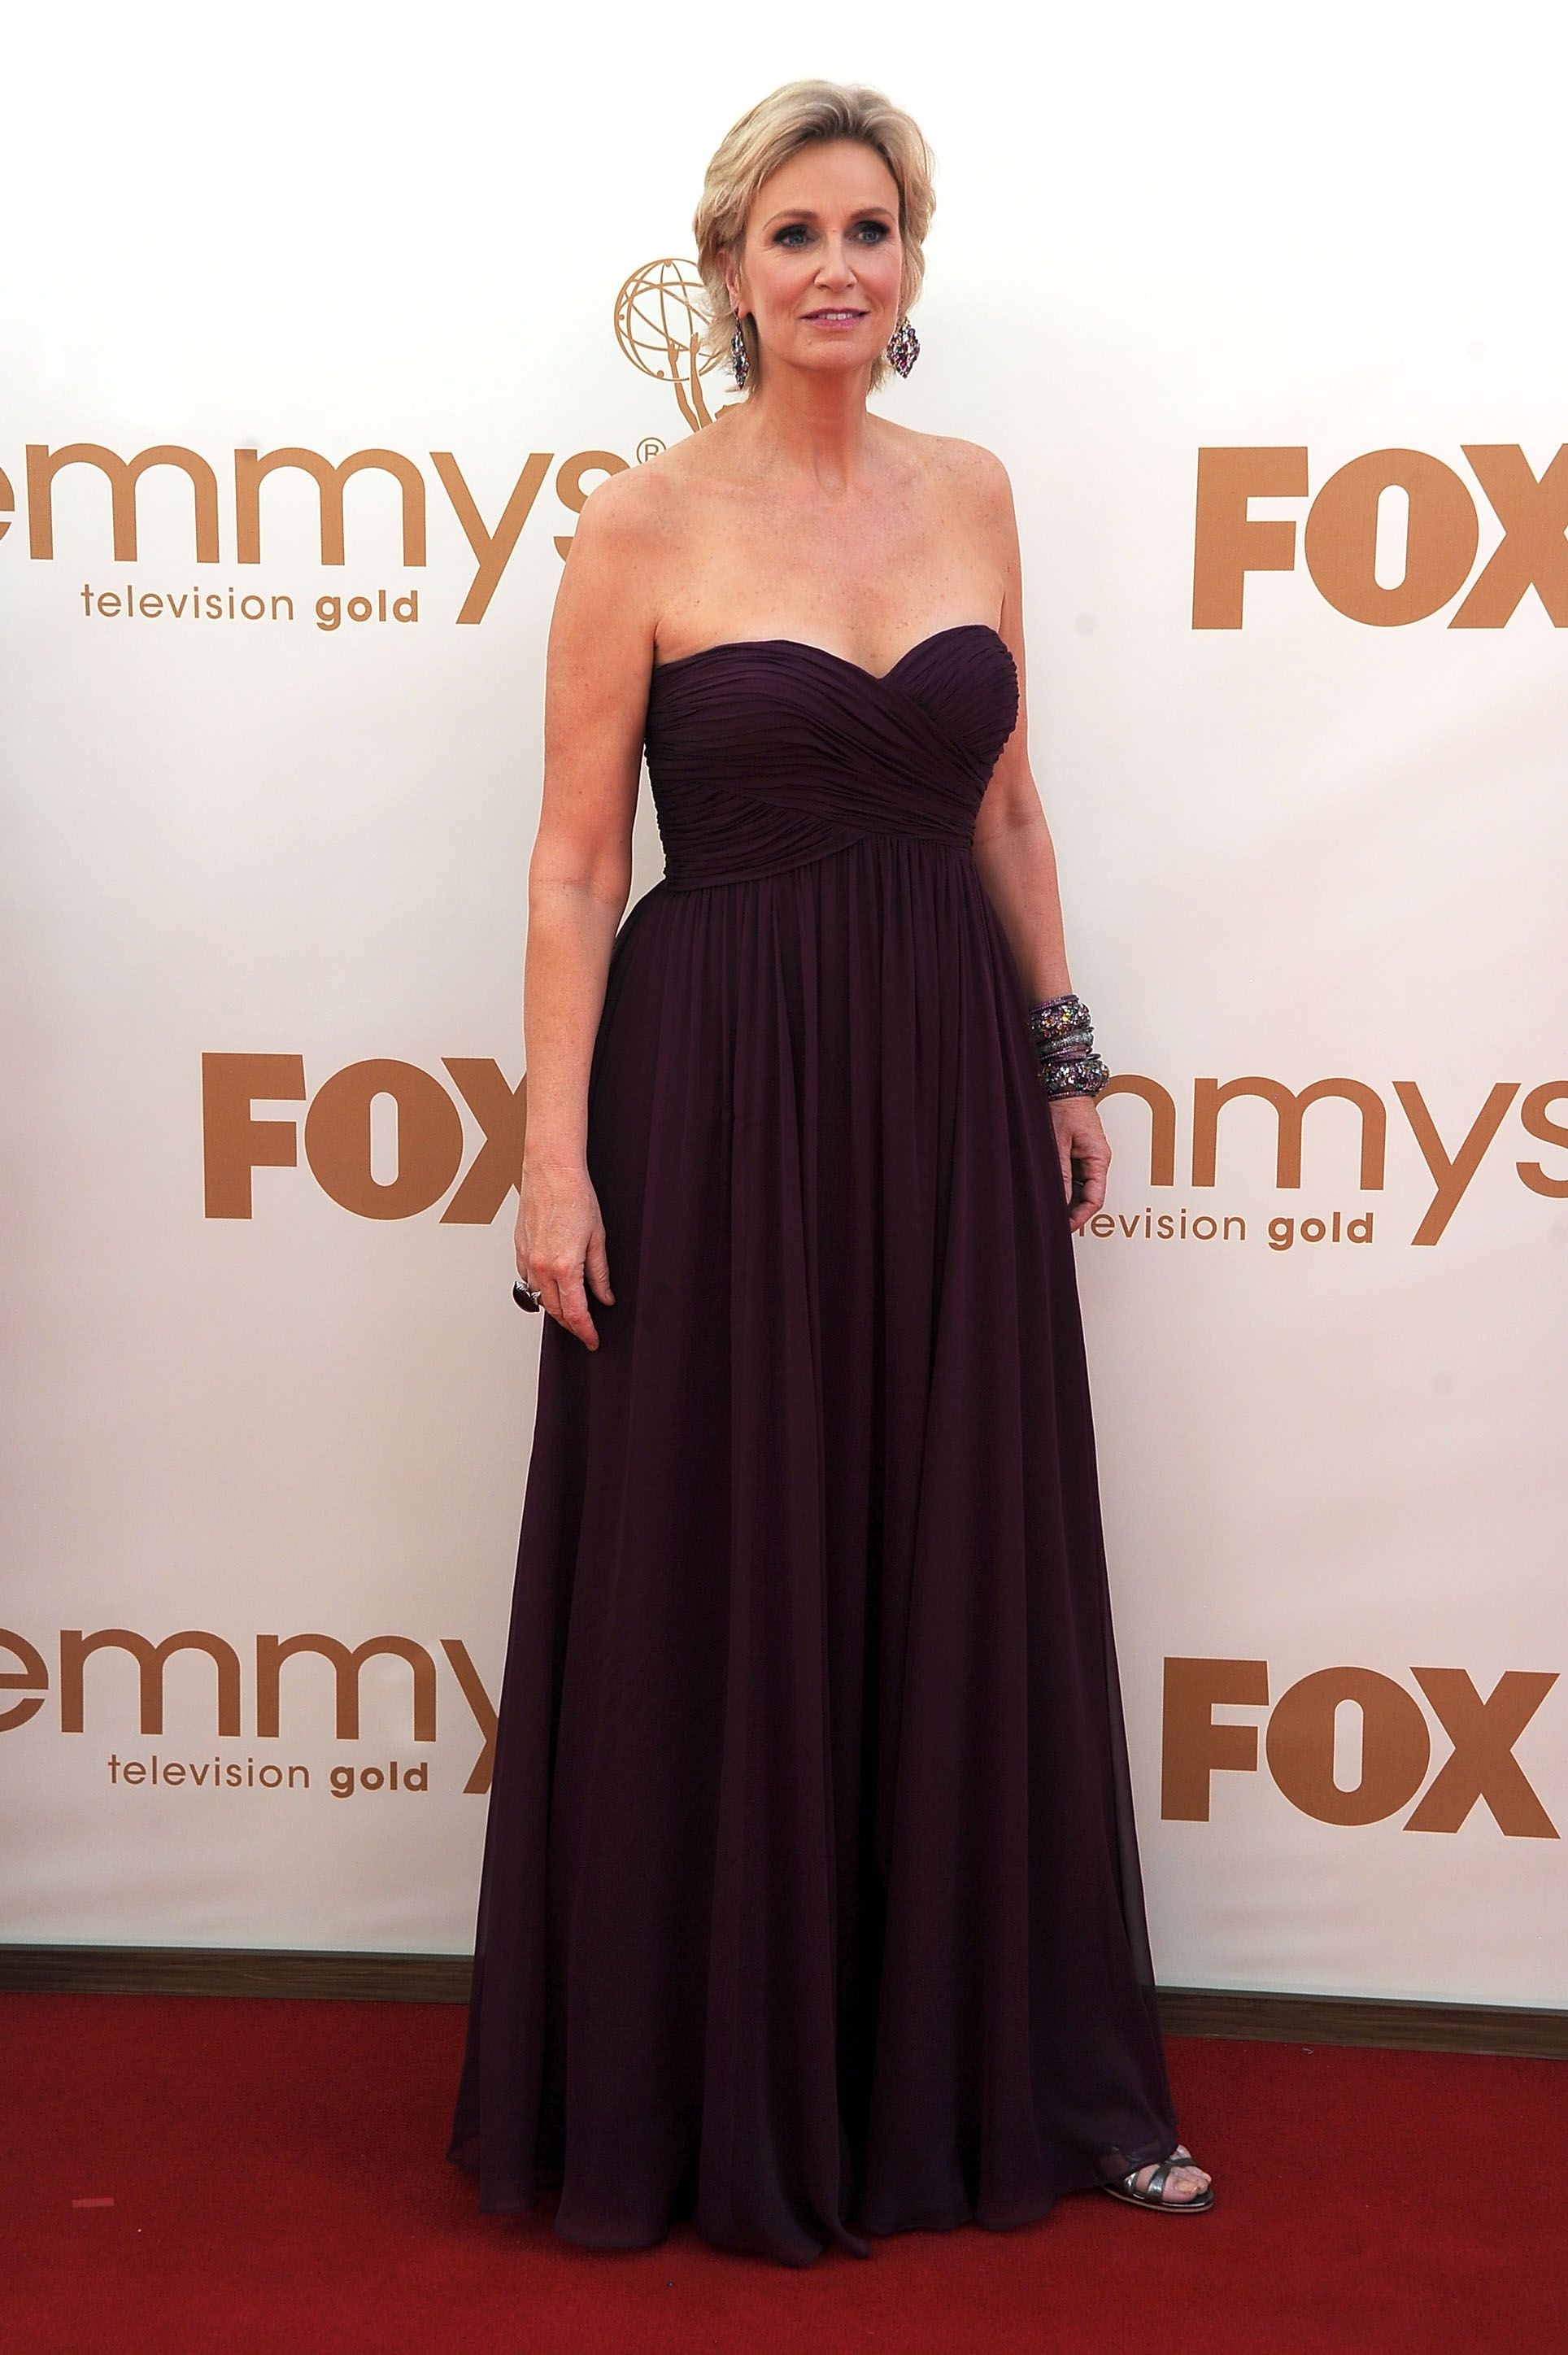 Dianna agron wedding dress  Emmys Girls Red Carpet Gallery  Jane lynch Red carpet and Purple